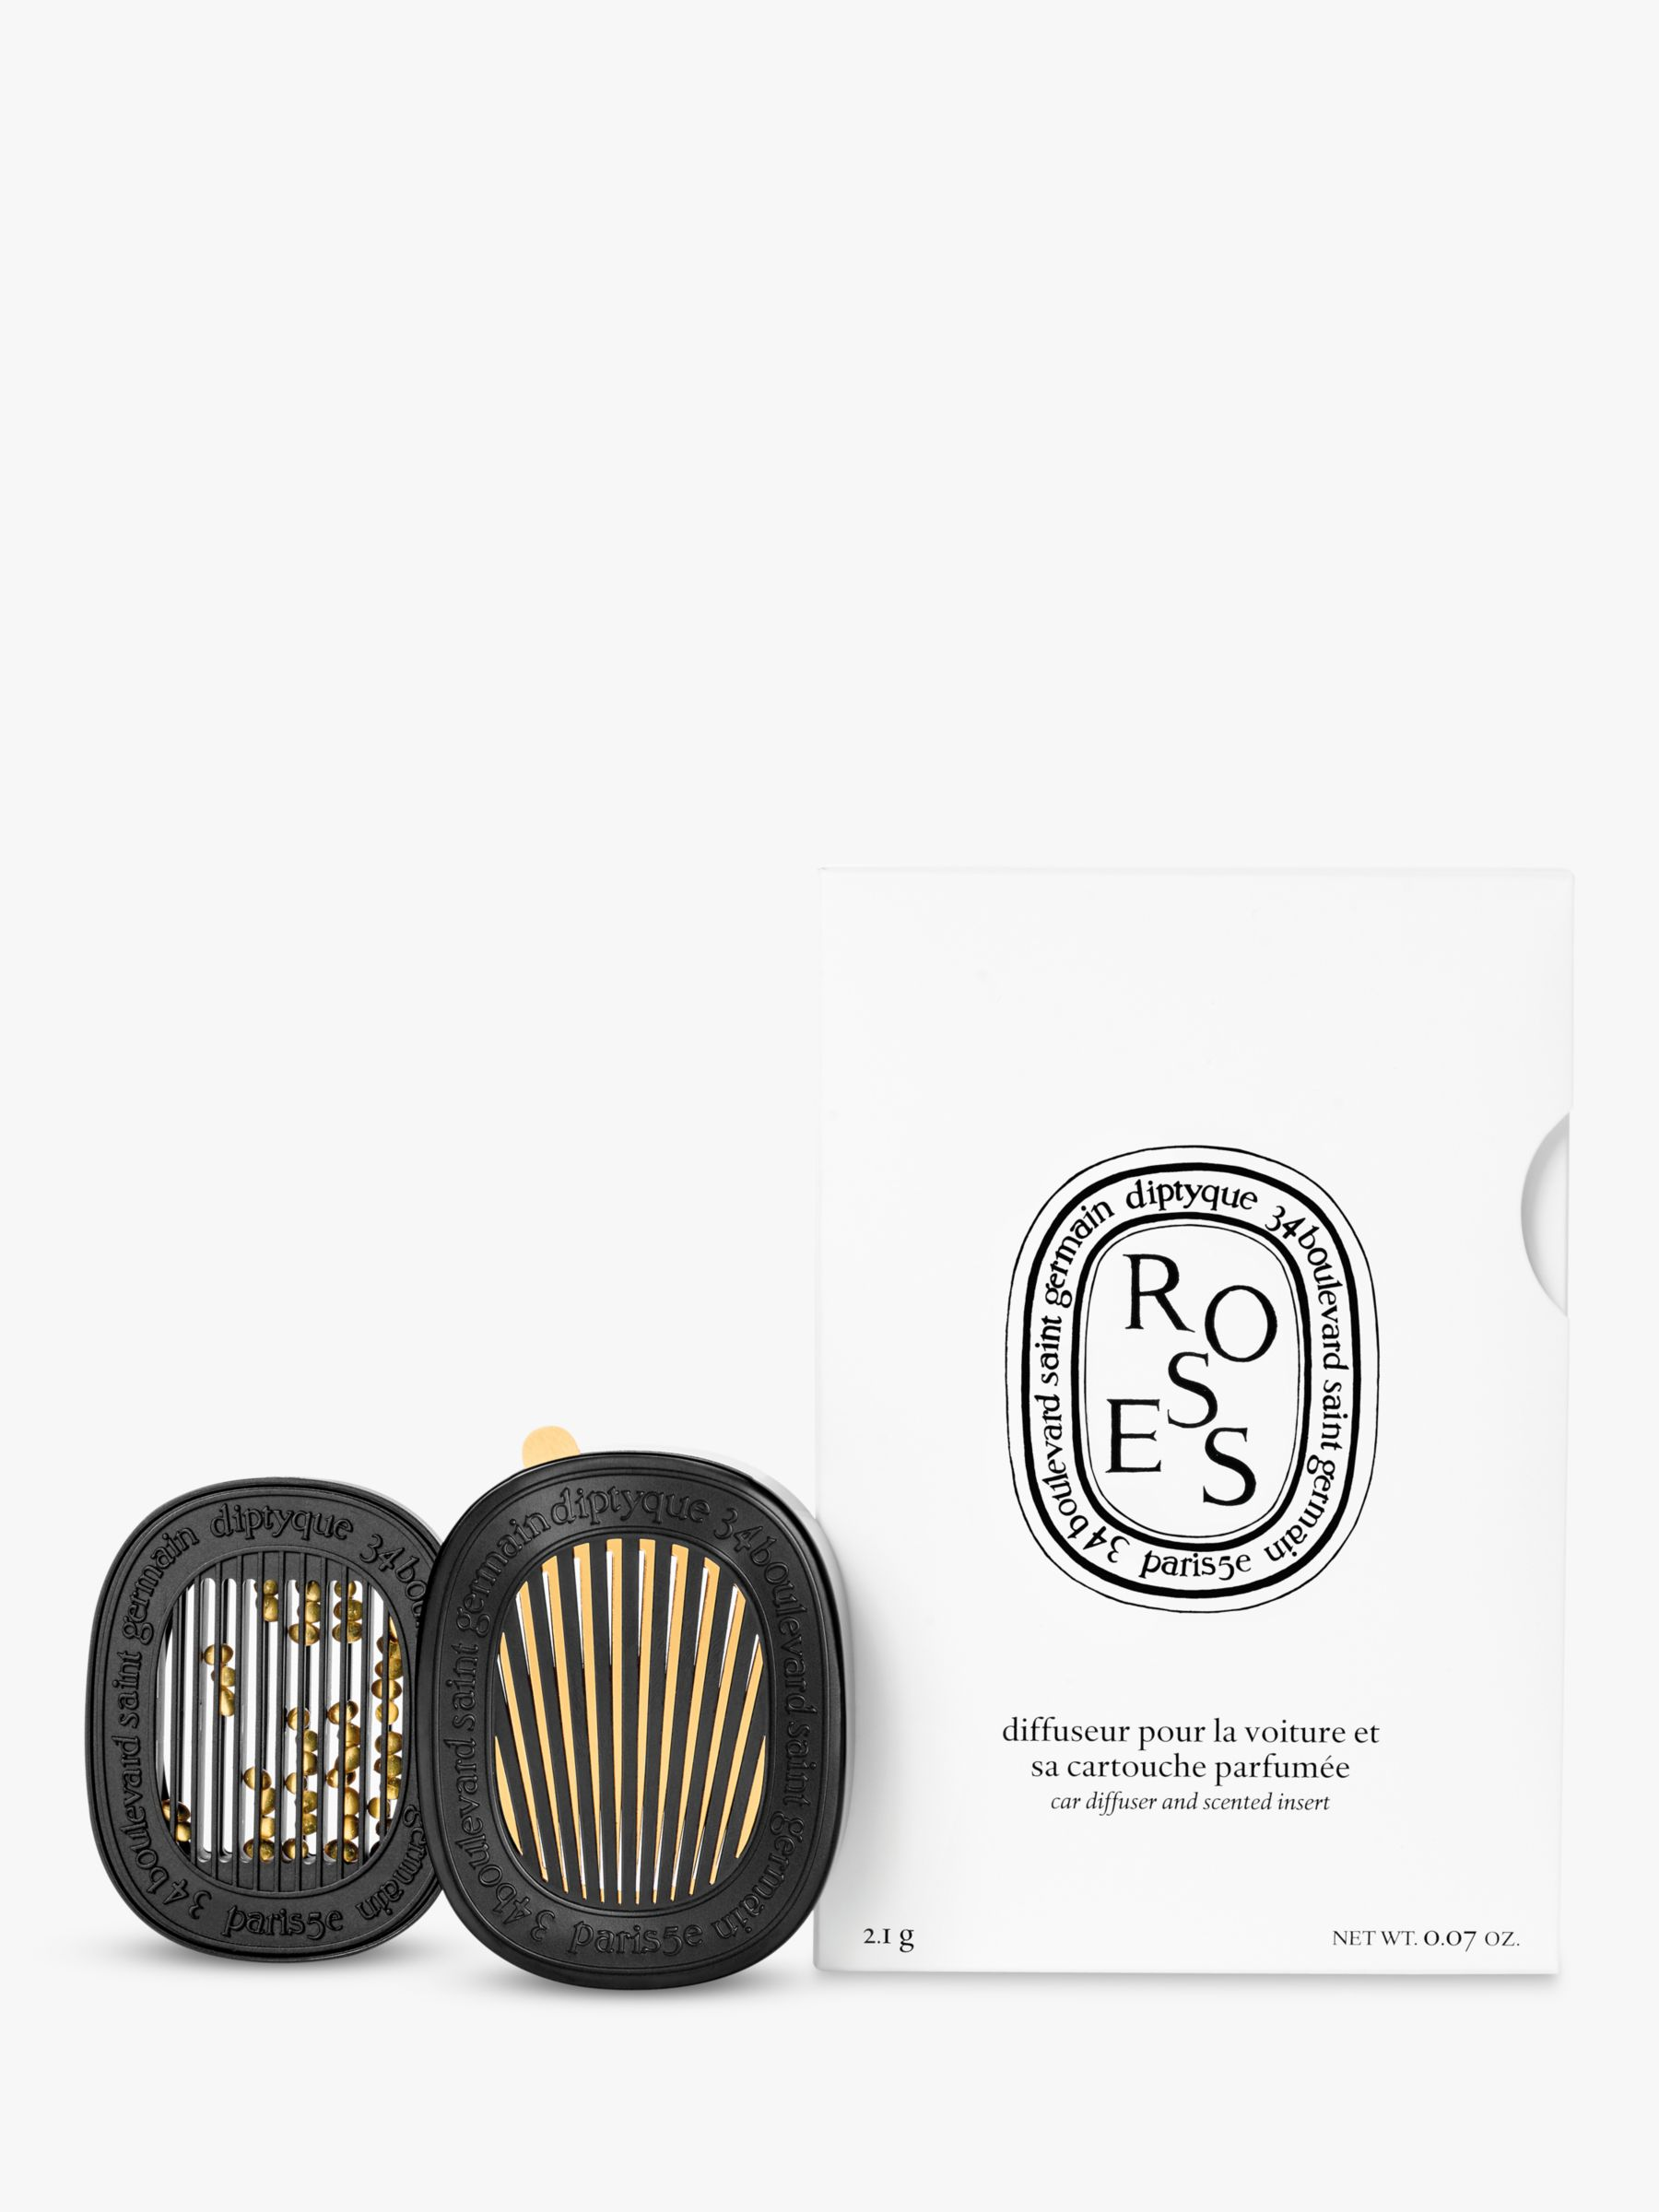 Diptyque Diptyque Car Diffuser with Roses Insert, 2.1g